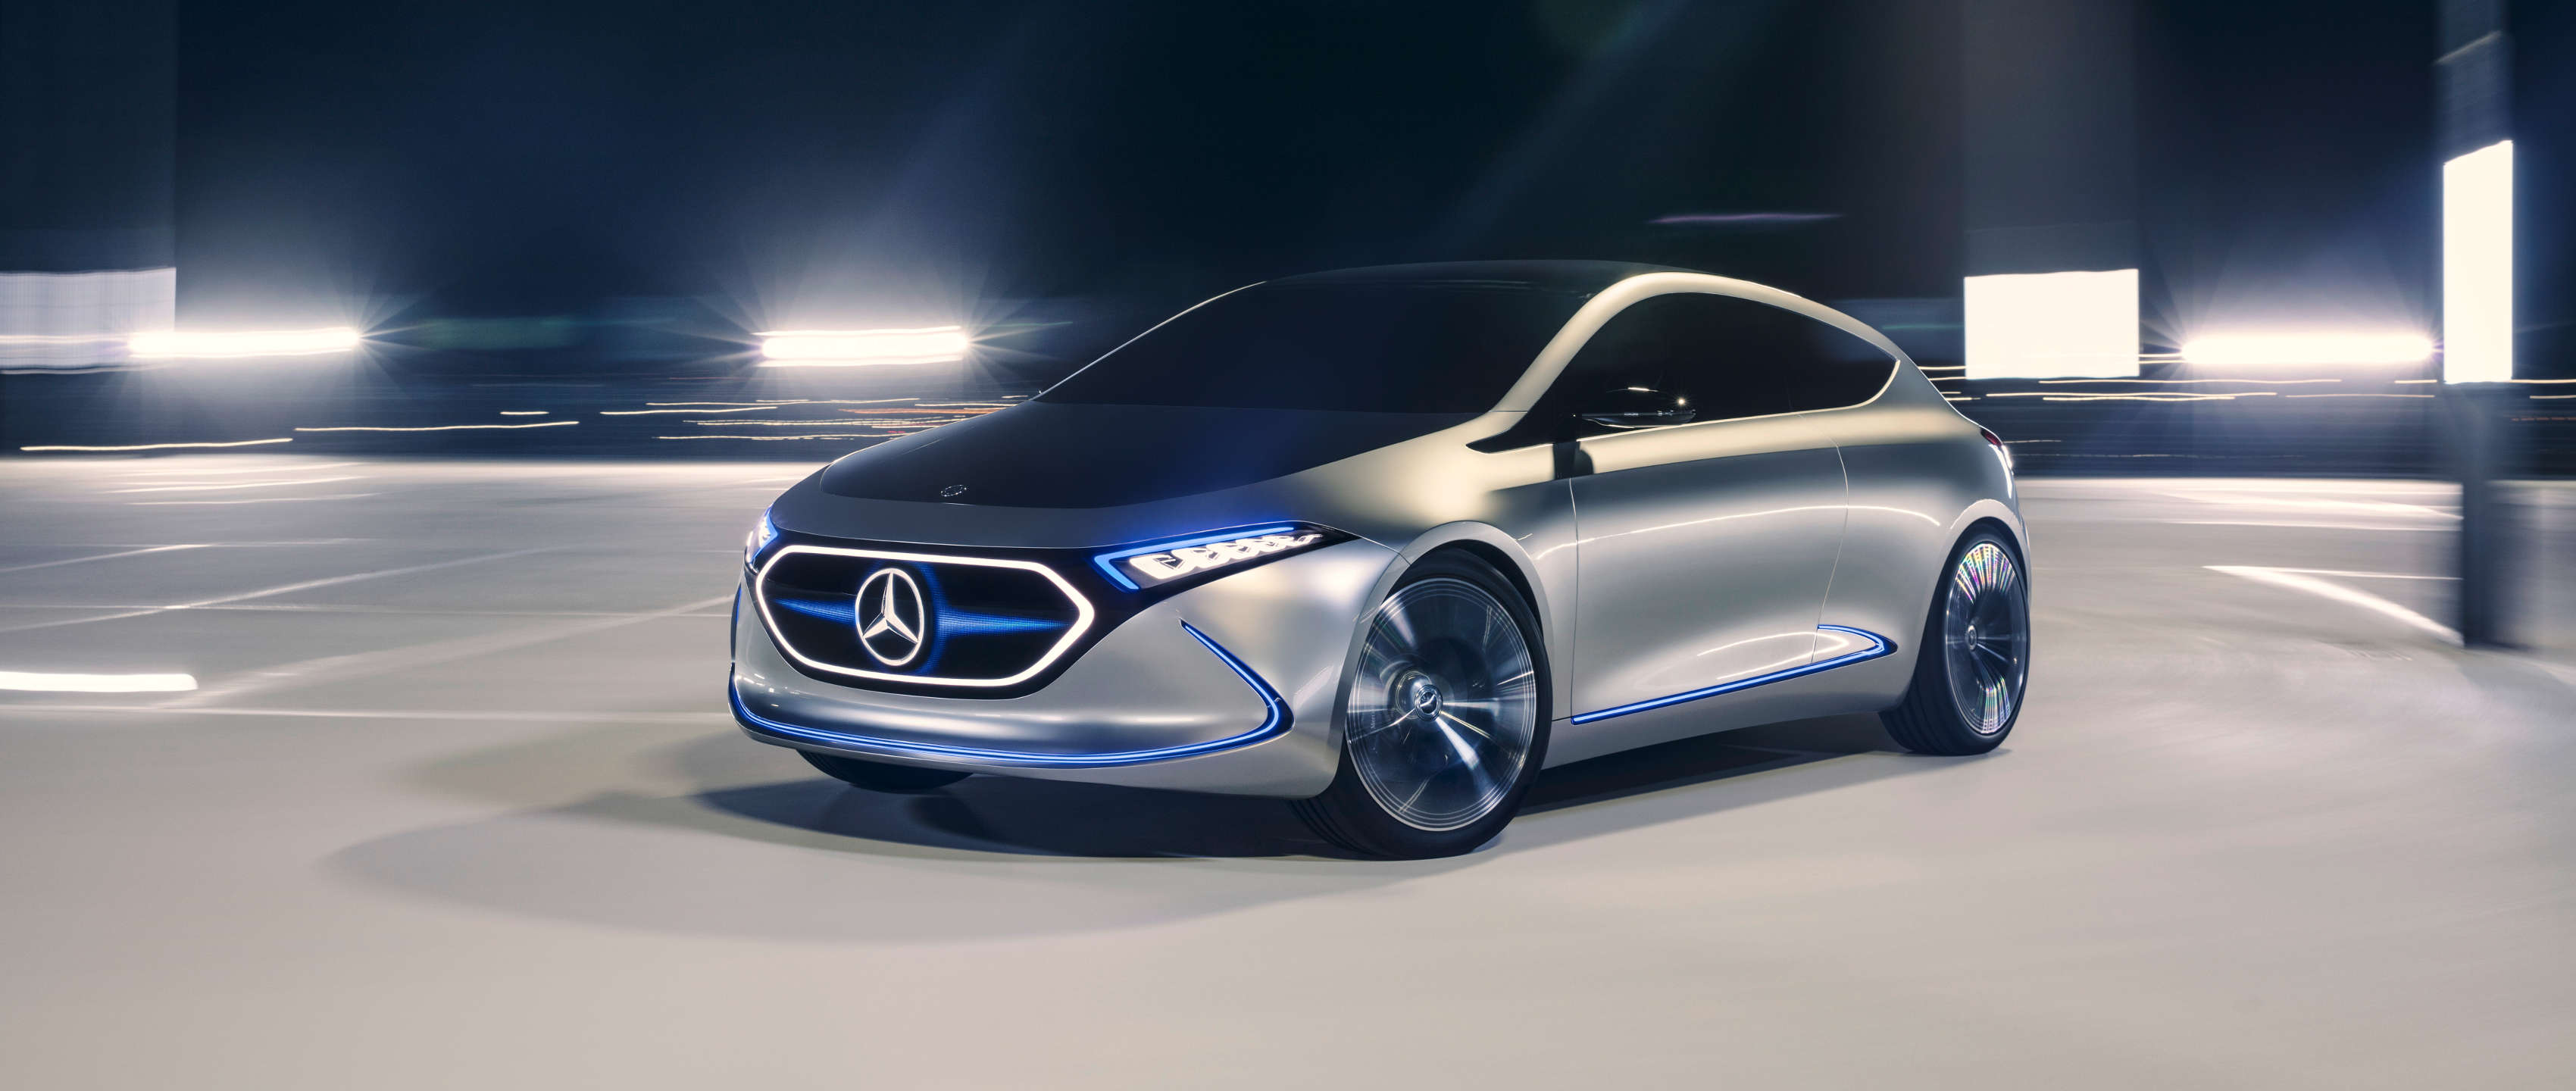 05-mercedes-benz-concept-car-eqa-3400x1440